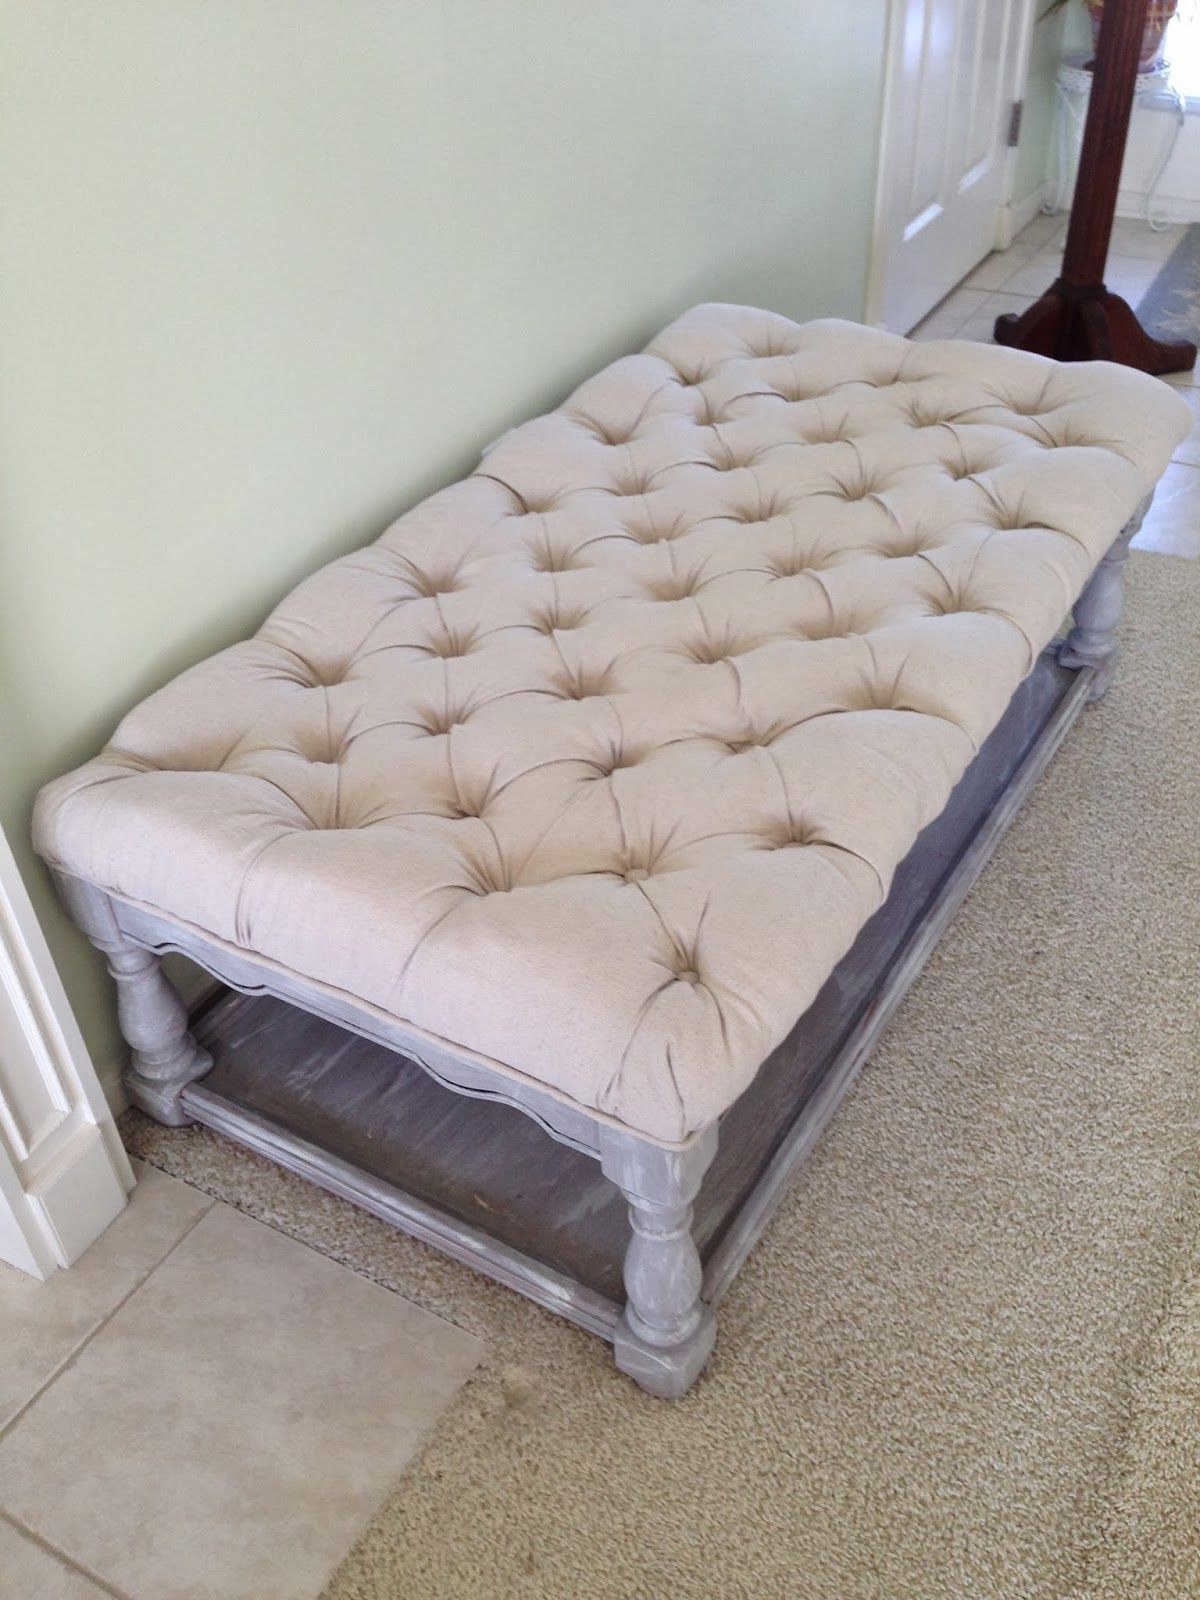 Pretentious Before We Get I Have To Tell You I Love Tufted This Oneis Inspired By One Addicted To Decorating Did Just Tufted Ottoman From A Coffee Table Diy House decor Addicted To Decorating